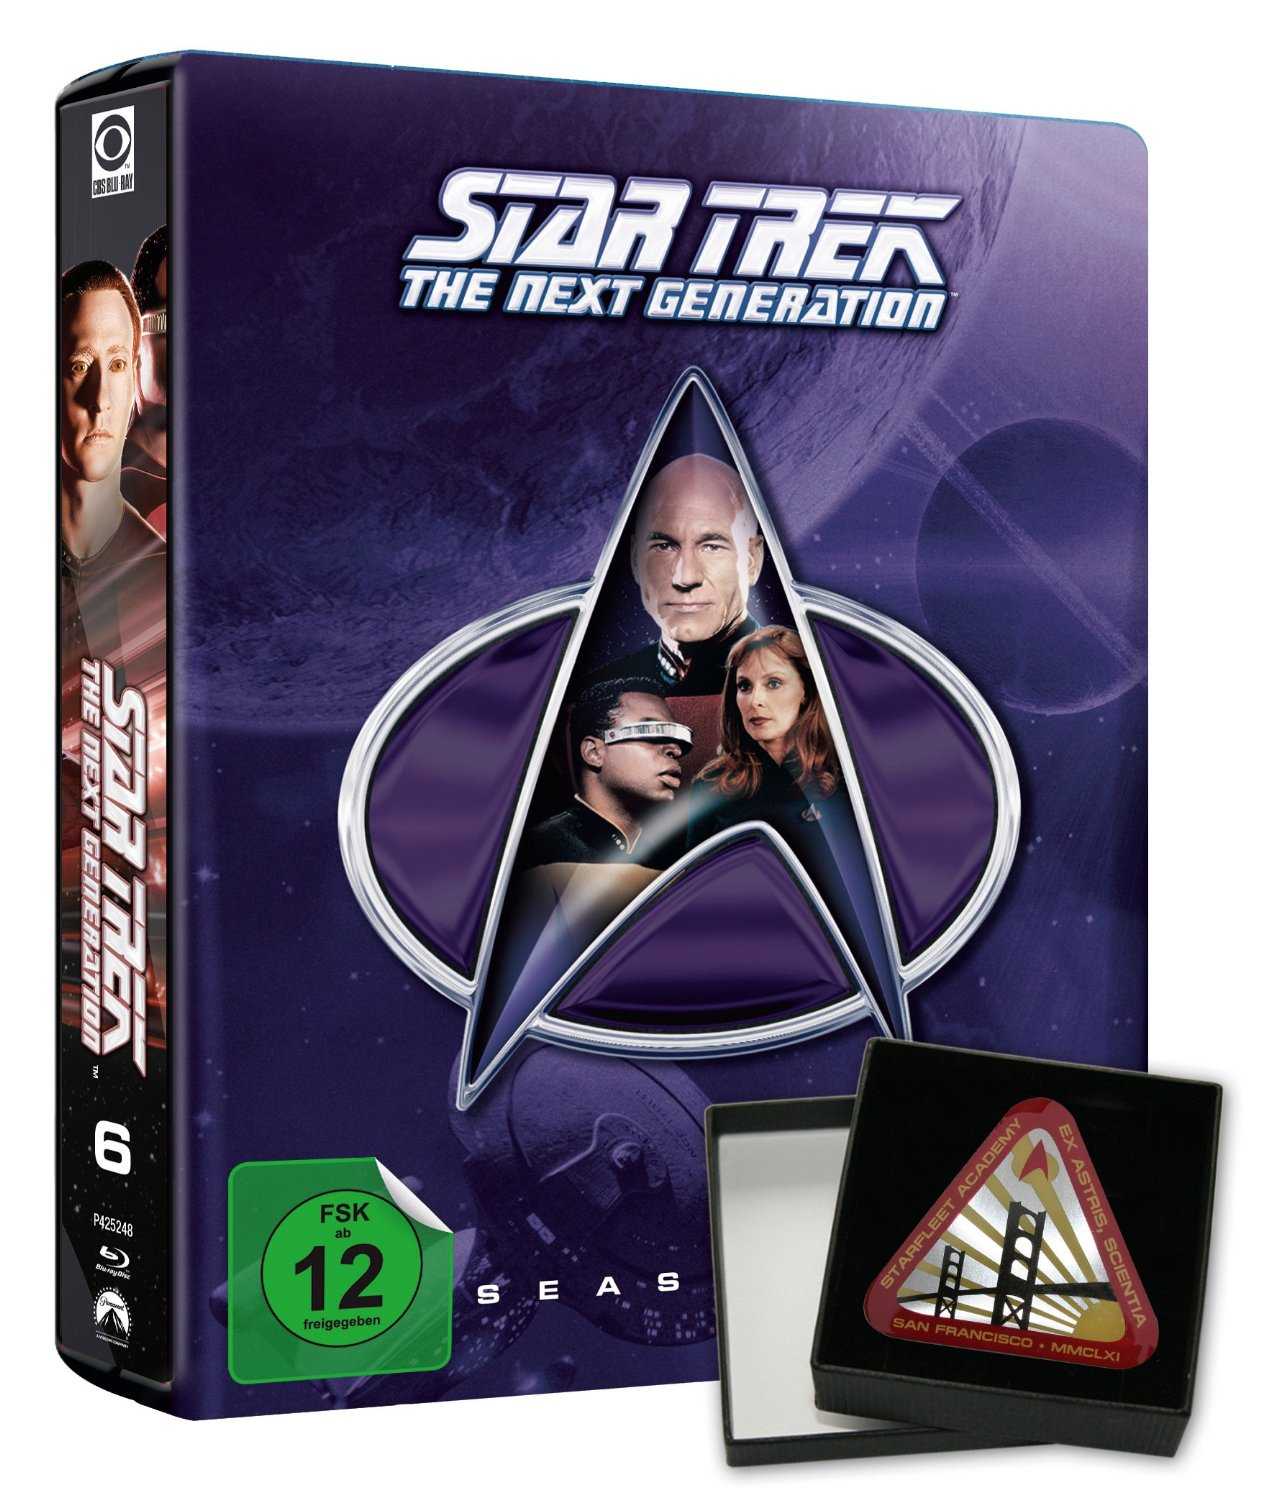 Star Trek: The Next Generation Season 6 Steelbook (Limited Collector's Edition)